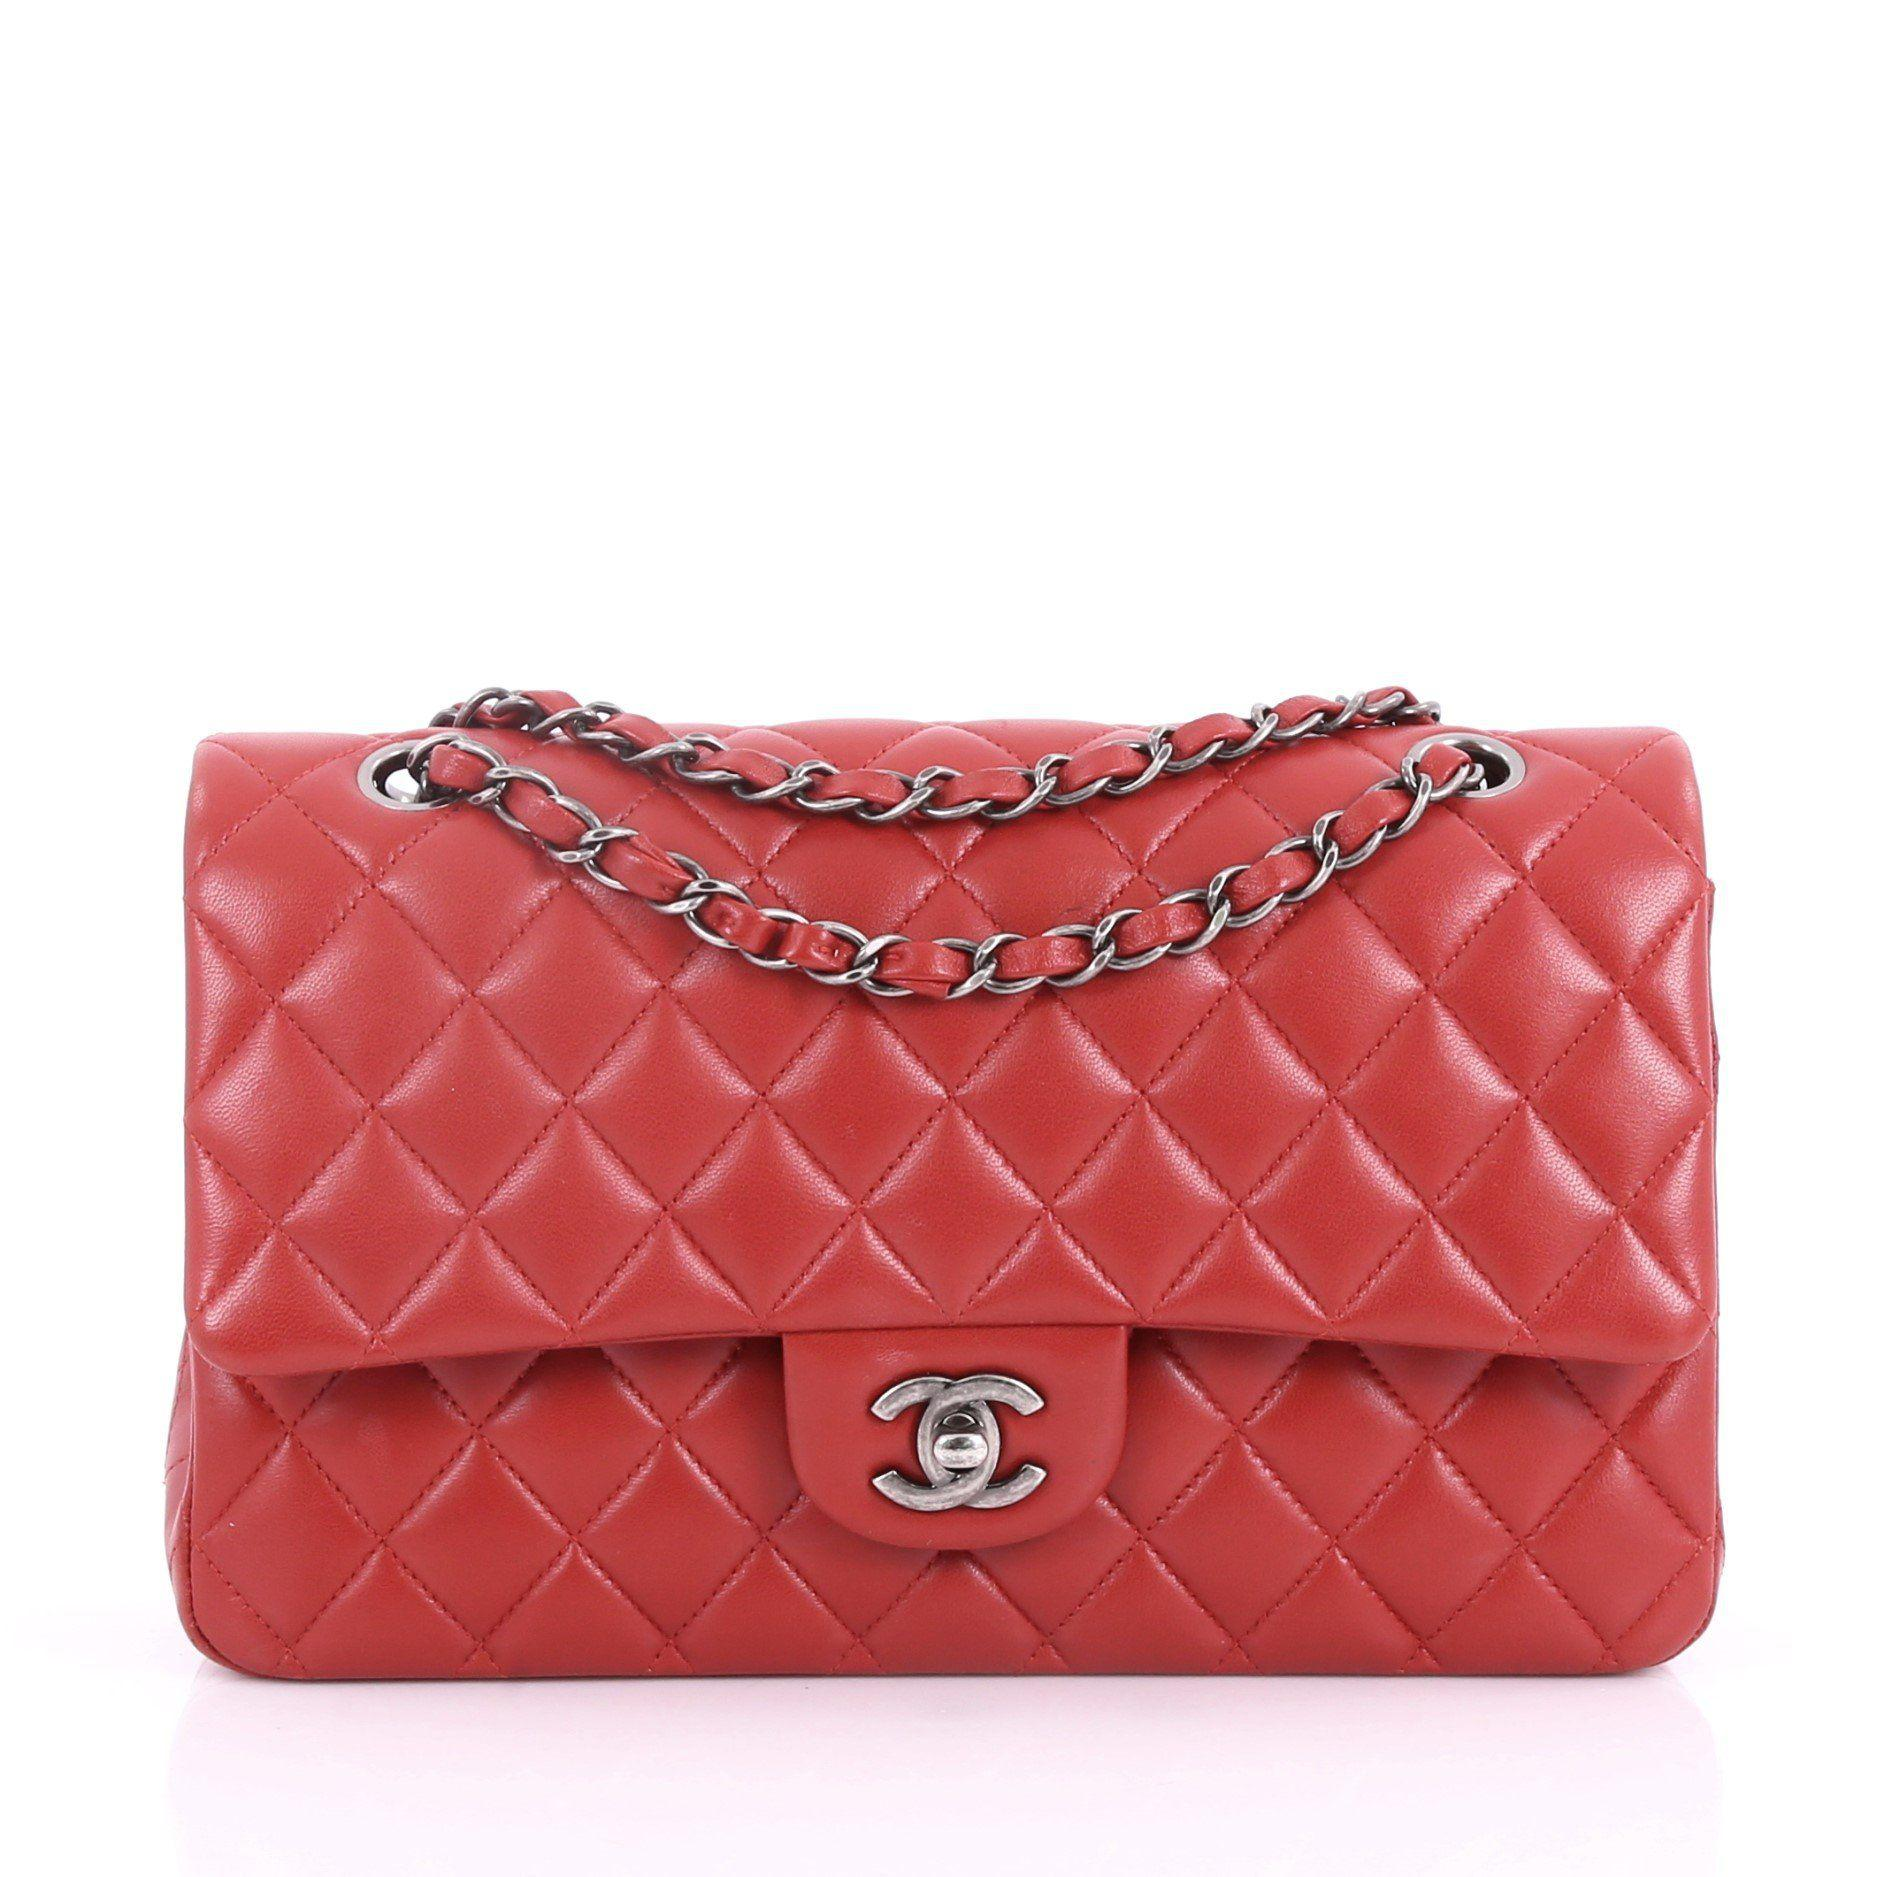 f18fefc20860 Lyst - Chanel Pre Owned Classic Double Flap Bag Quilted Lambskin ...